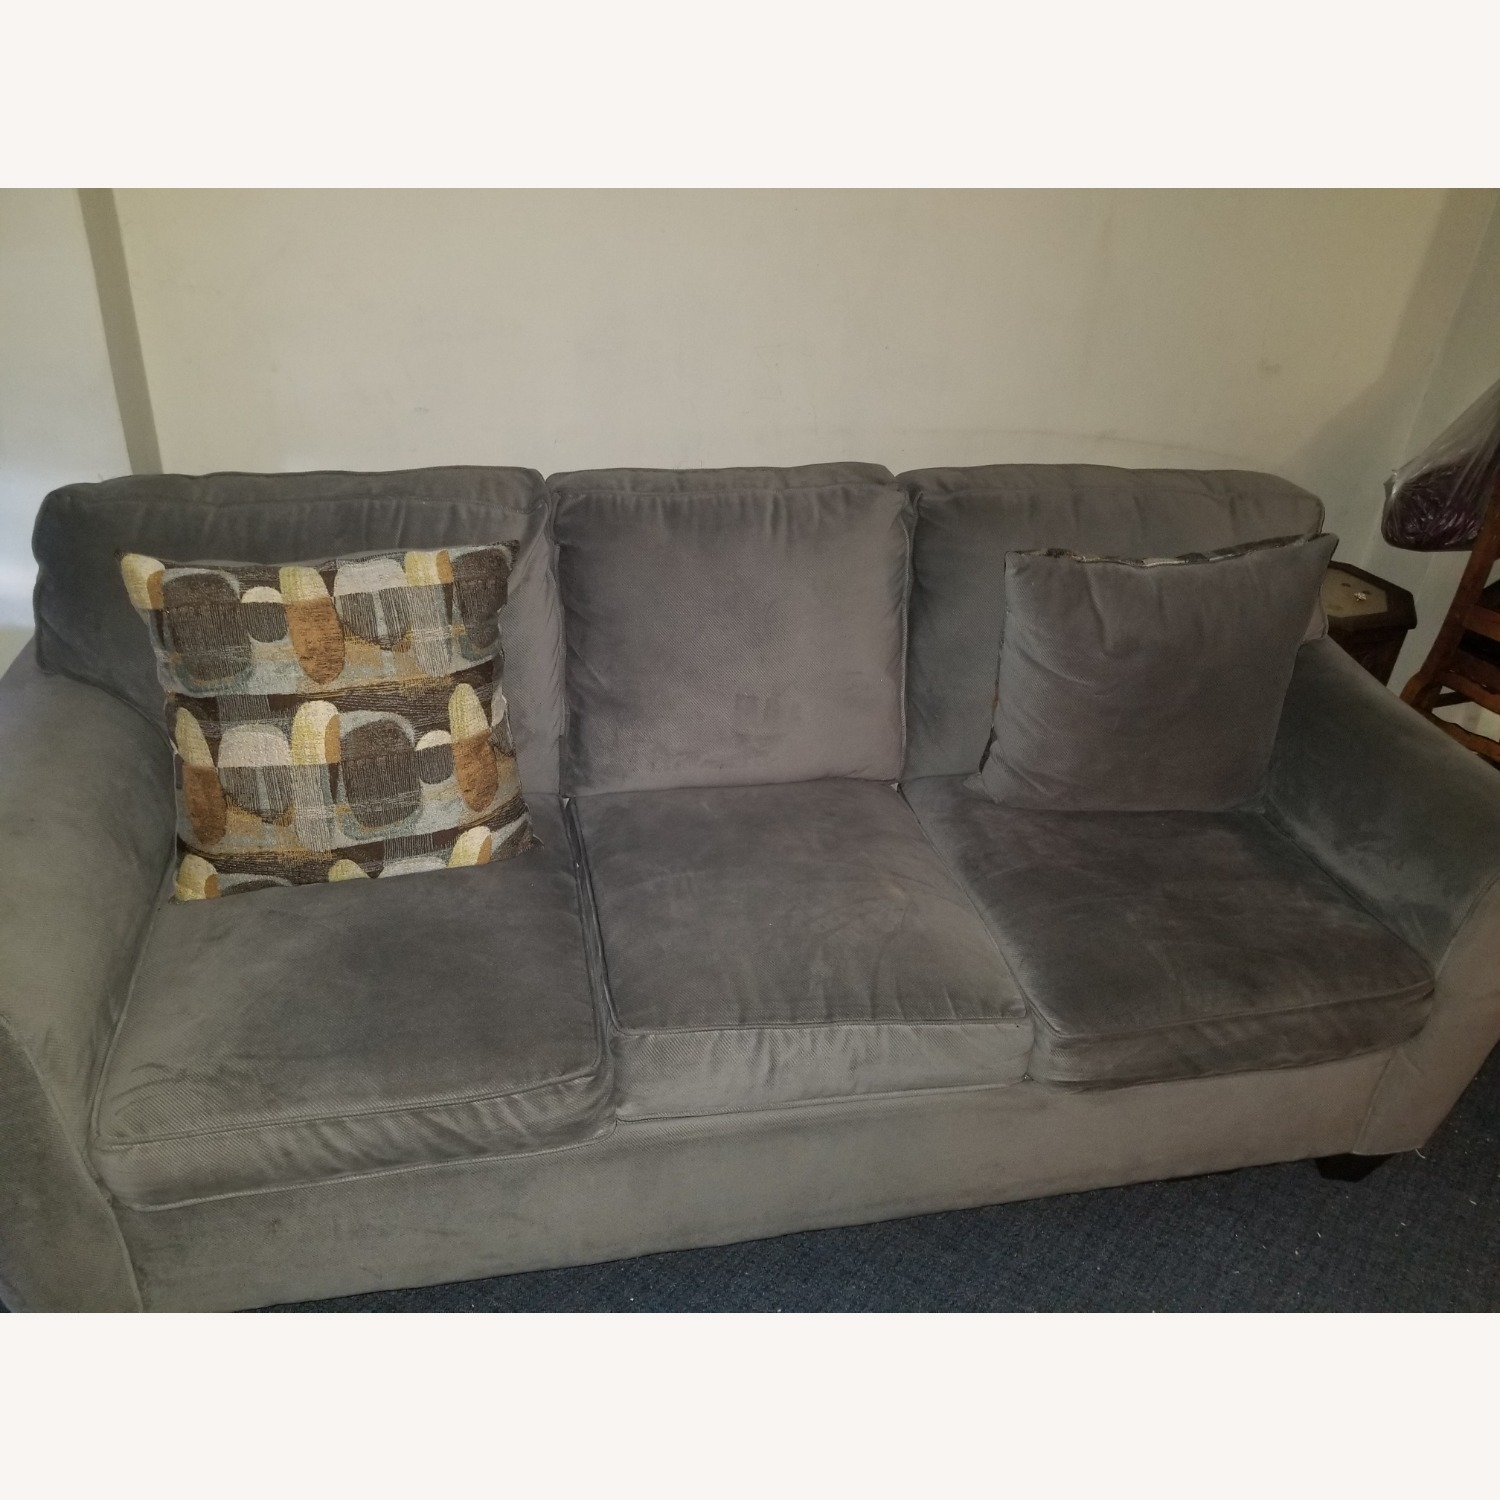 Raymour & Flanigan Green Couch with Reversible Pillows - image-3